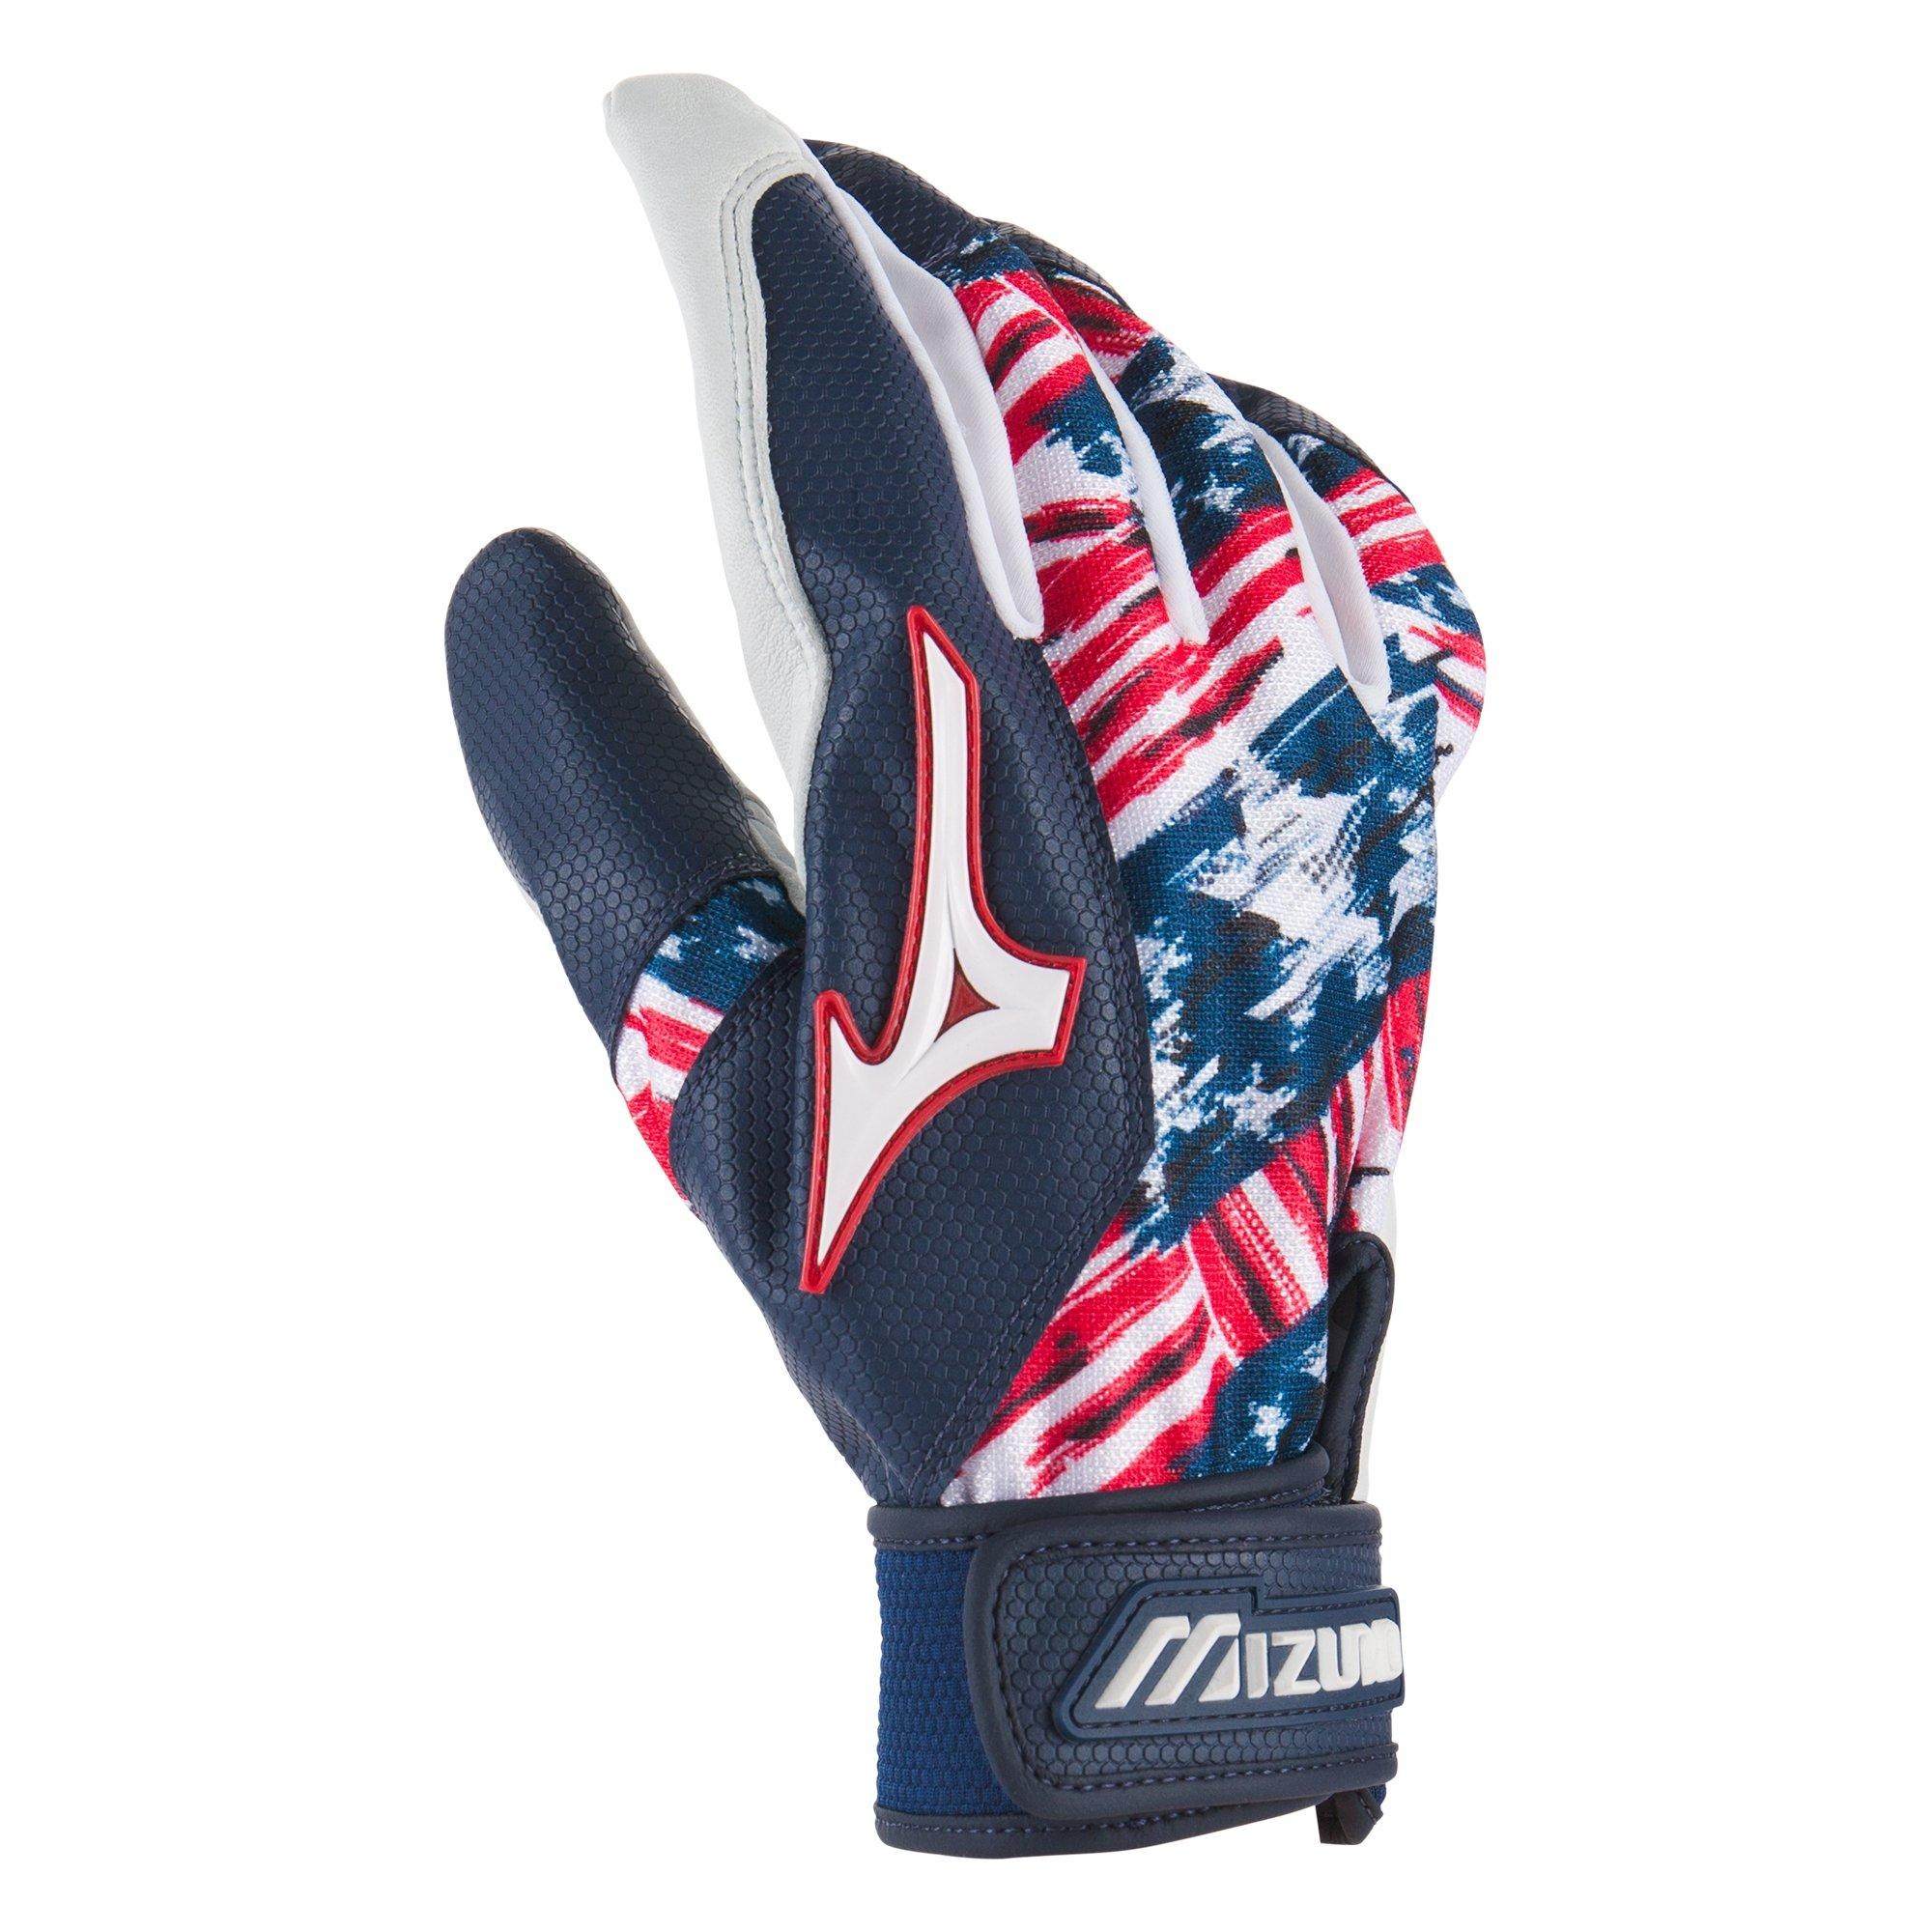 Adult batting glove